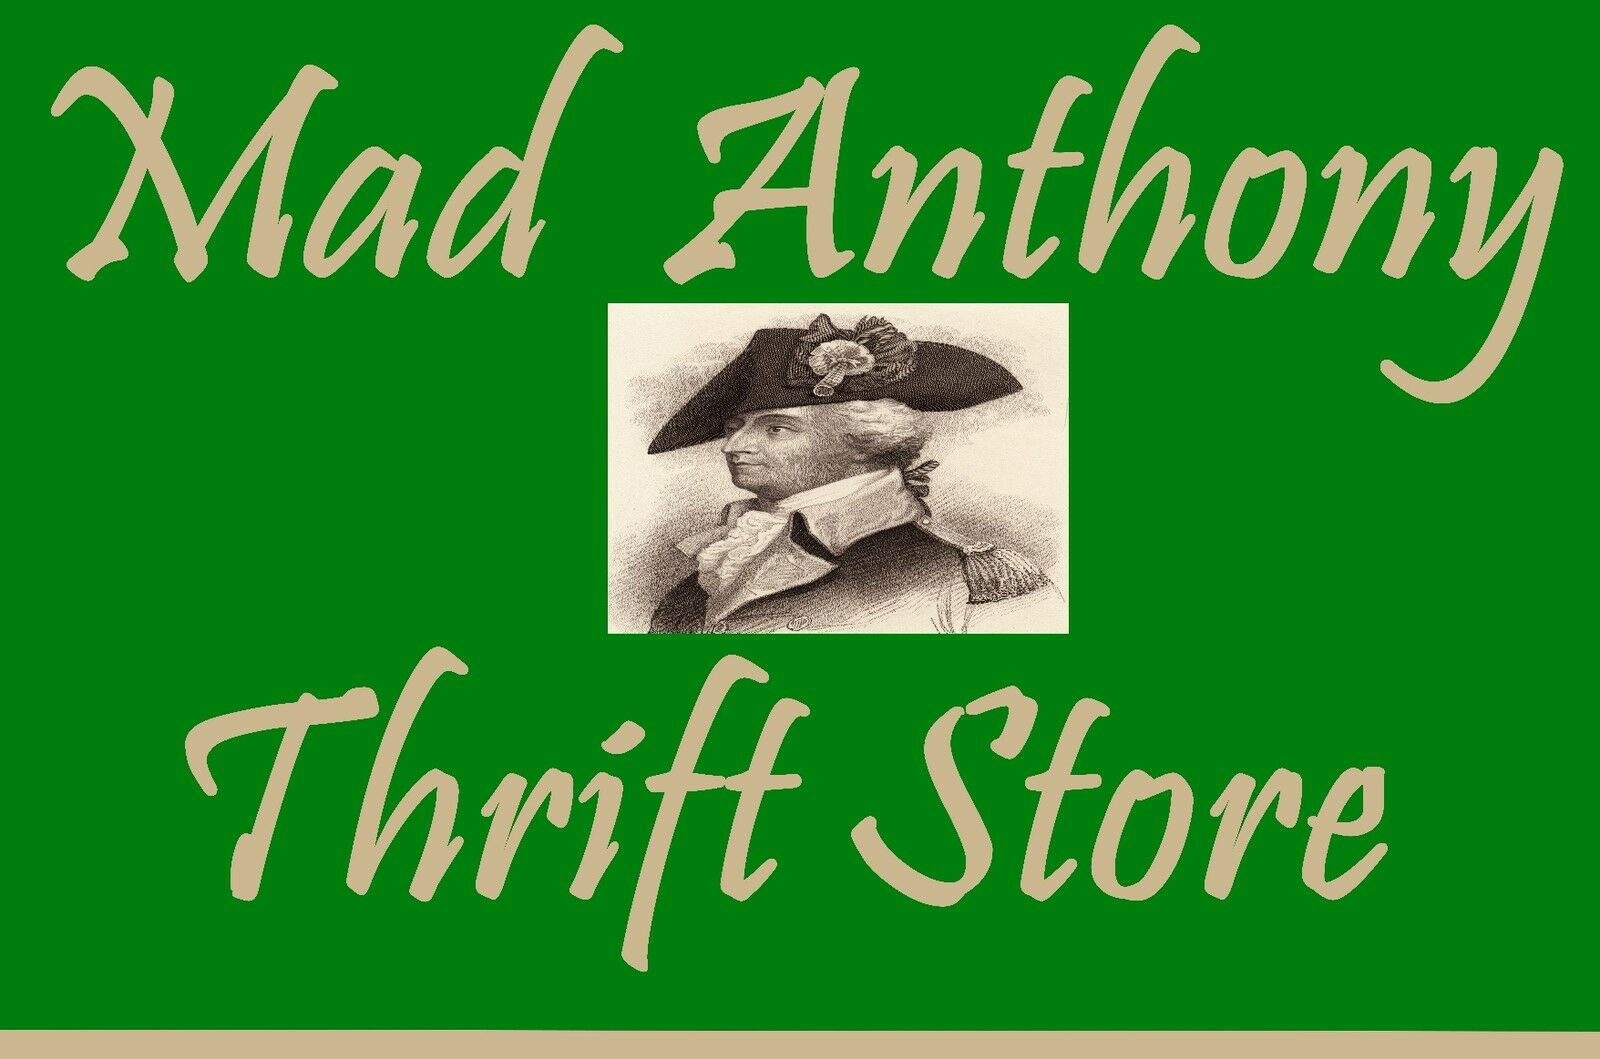 mad_anthony_thrift_store